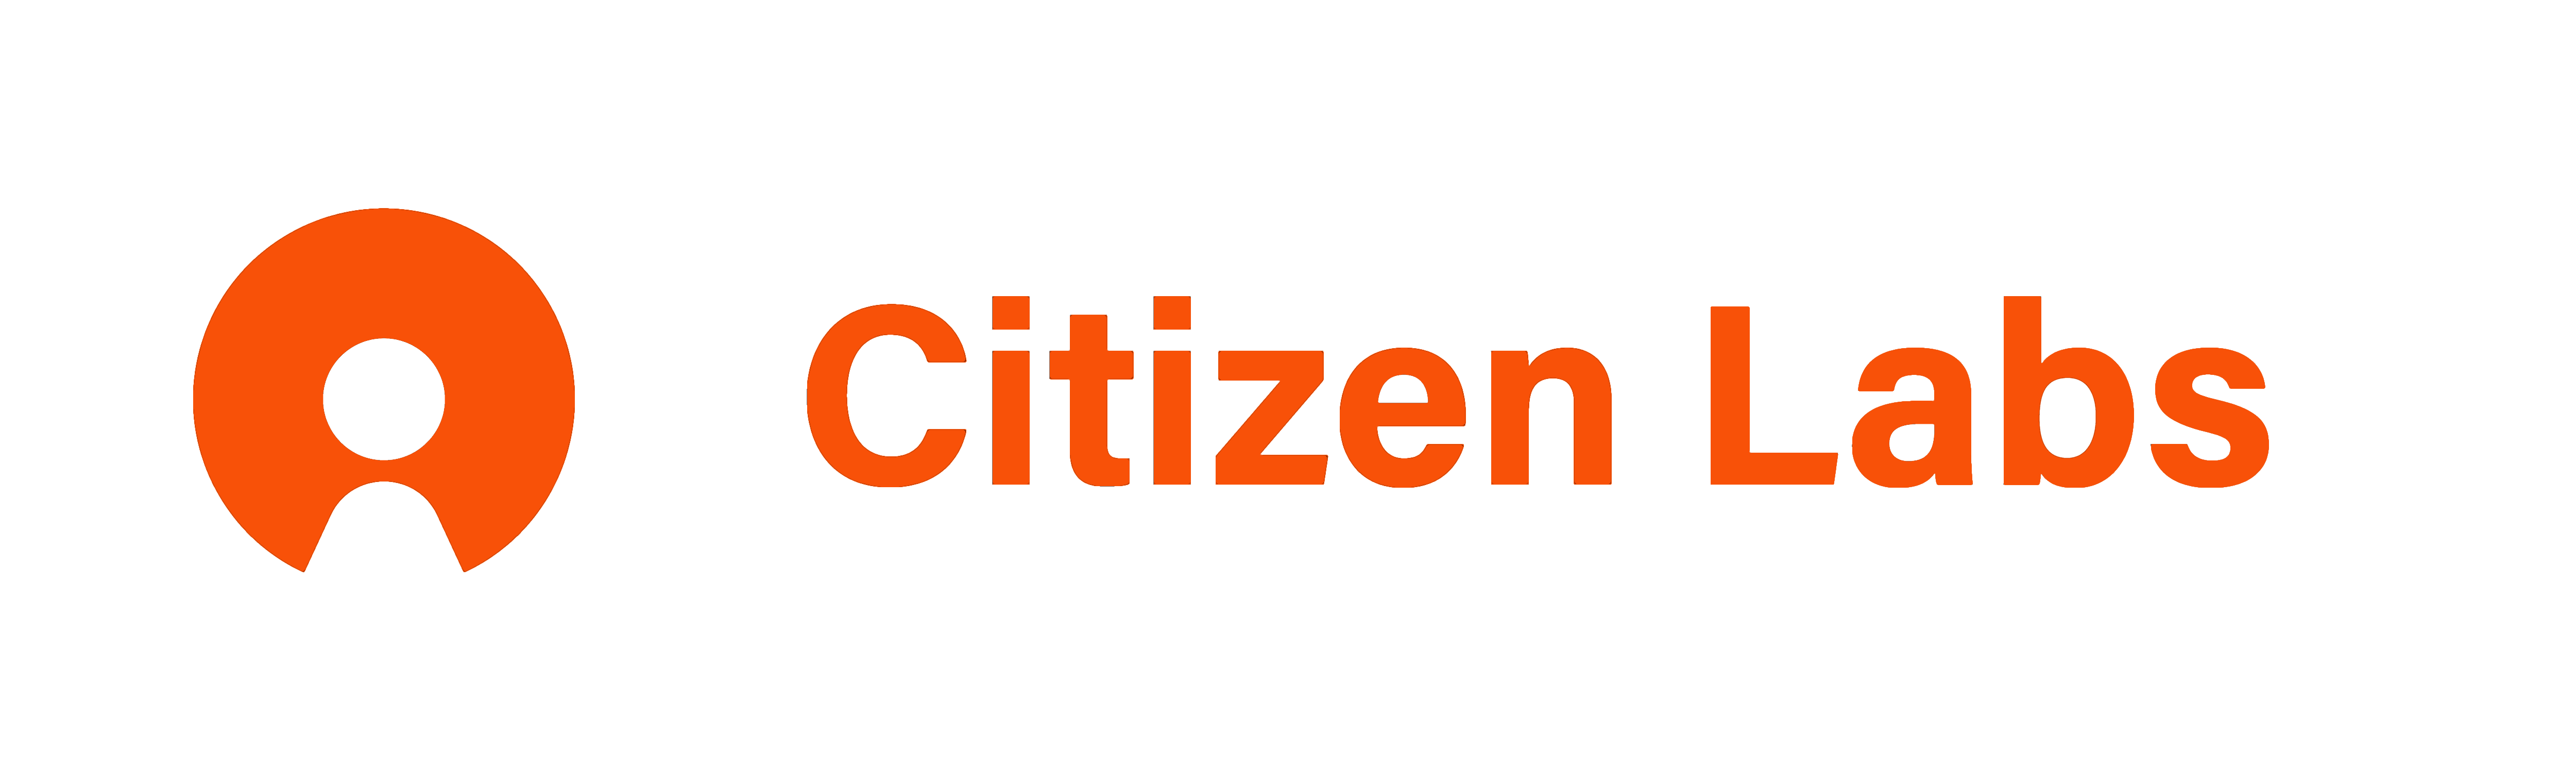 Citizen Labs